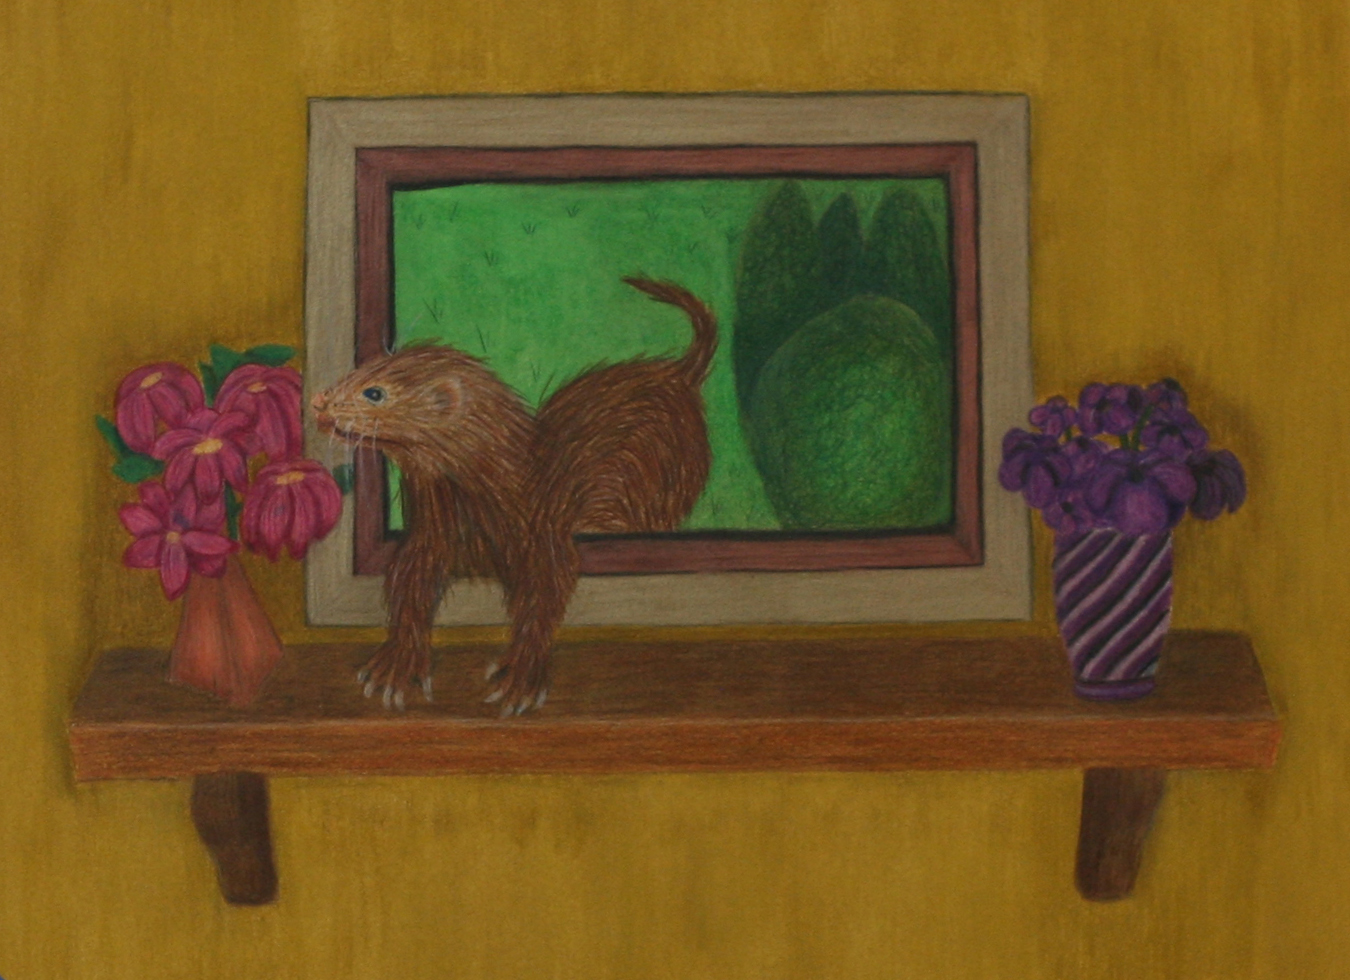 ferret coming out of picture frame to sniff flower purple vase